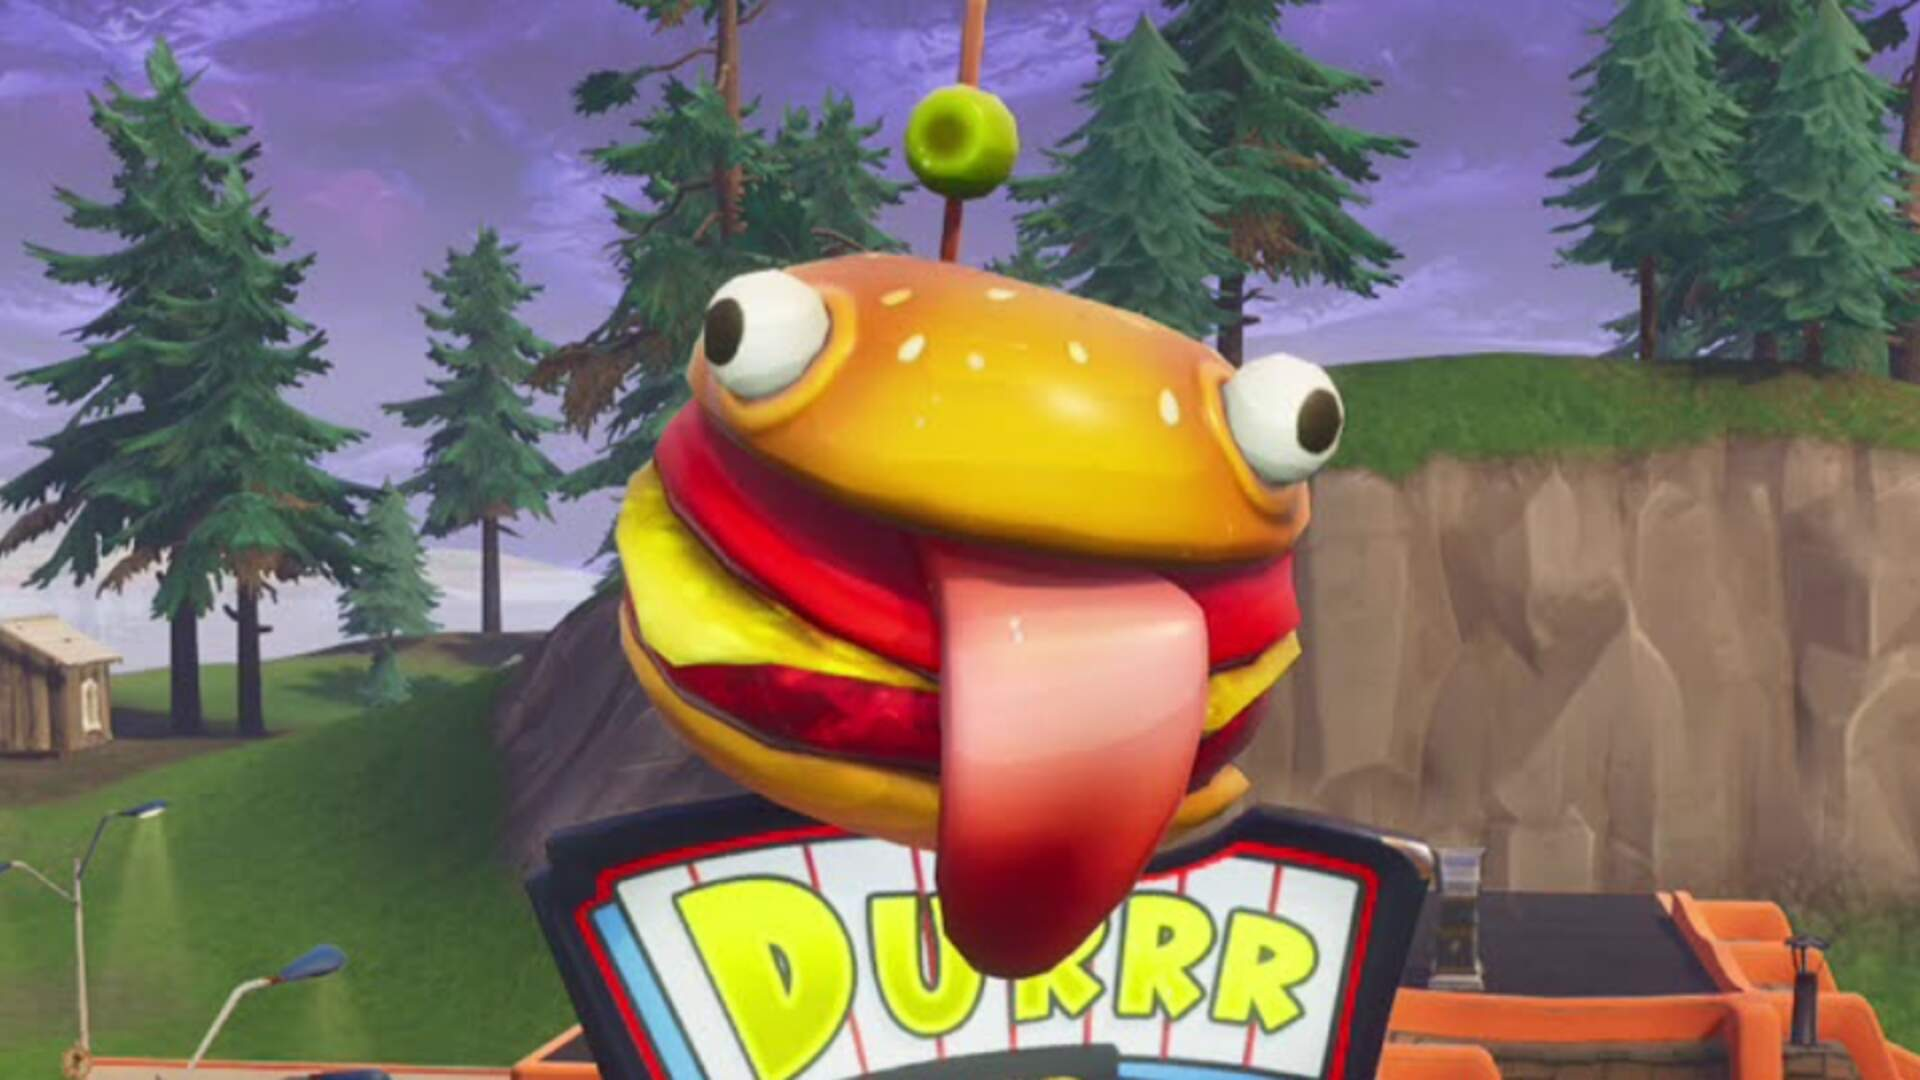 Missing Durr Burger Mascot From Fortnite Somehow Ended Up in the Desert